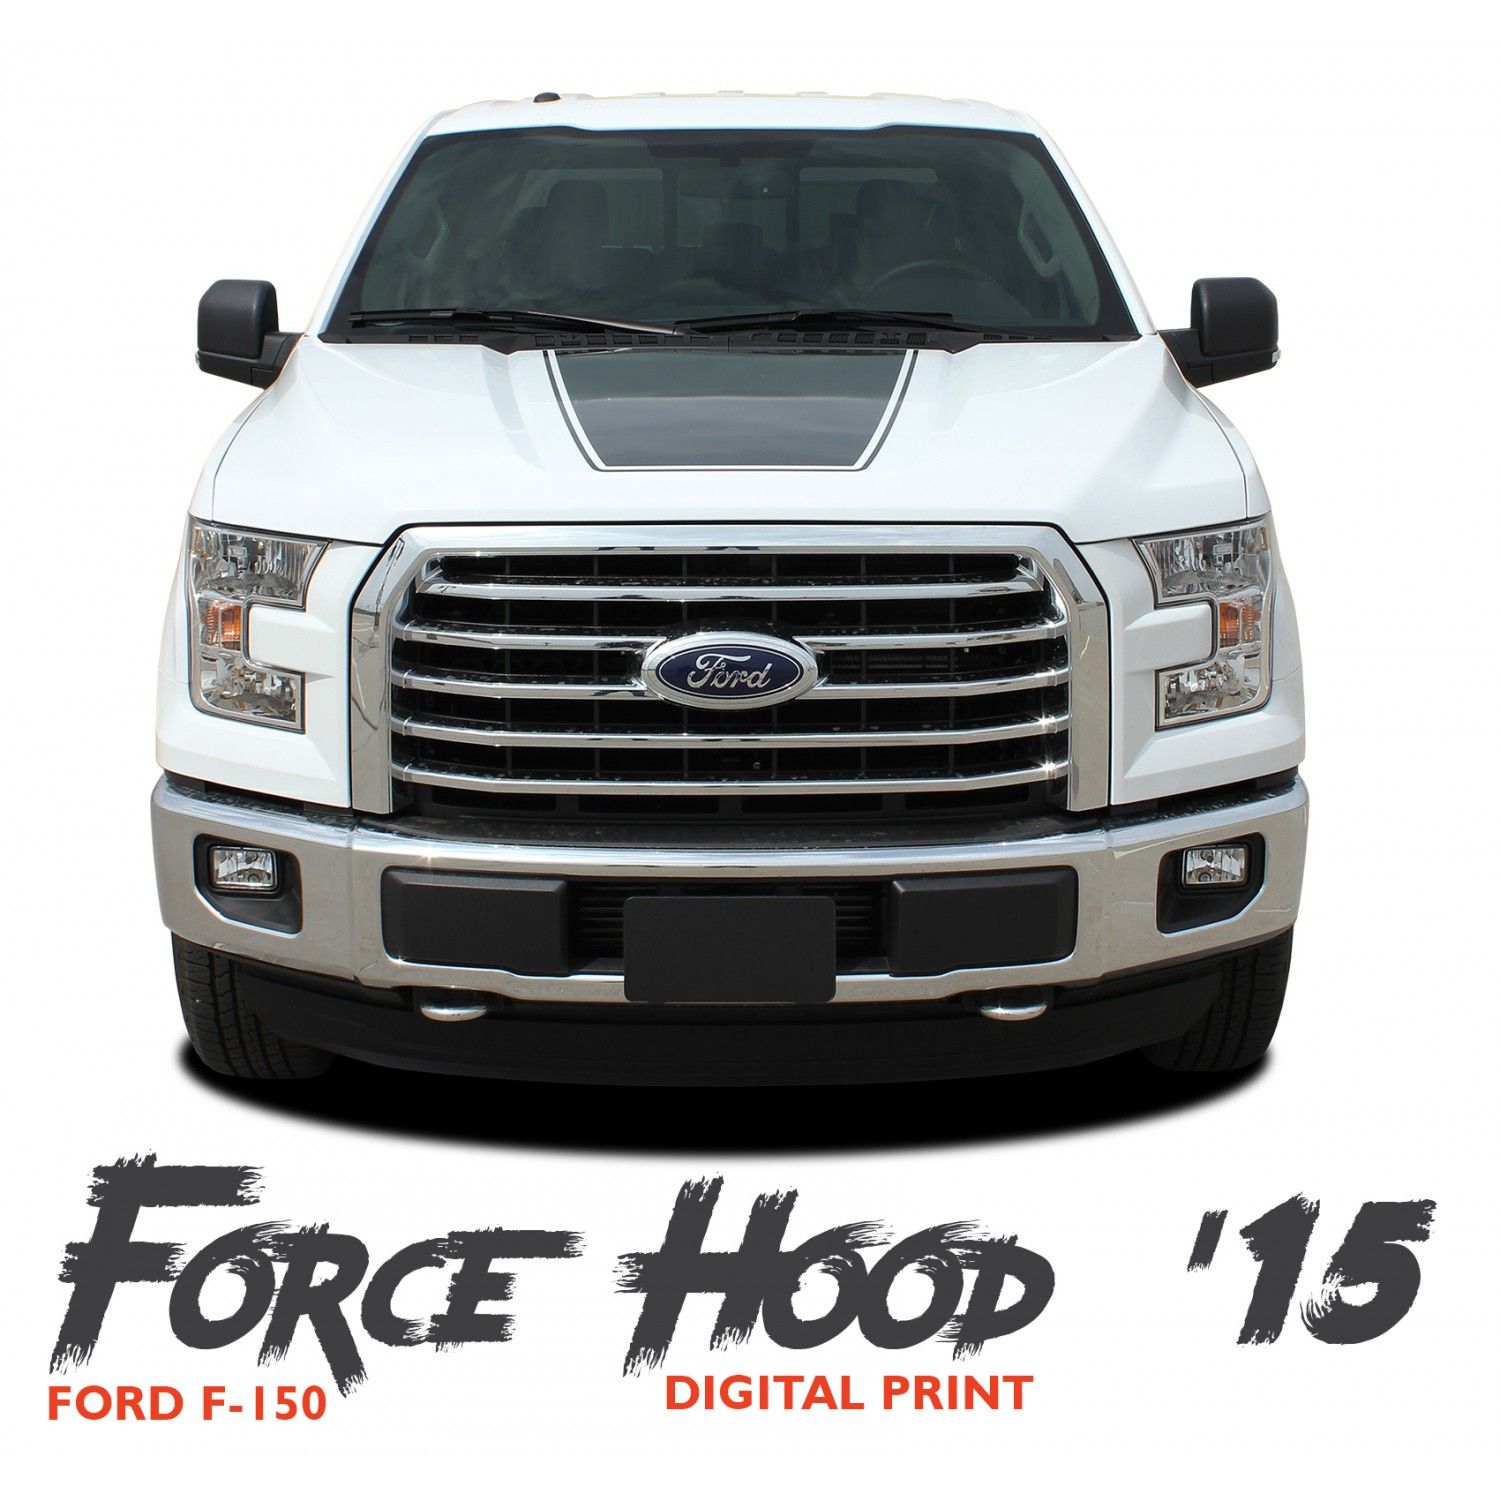 Ford f 150 force hood 15 digital appearance package center wide hood vinyl graphic decal